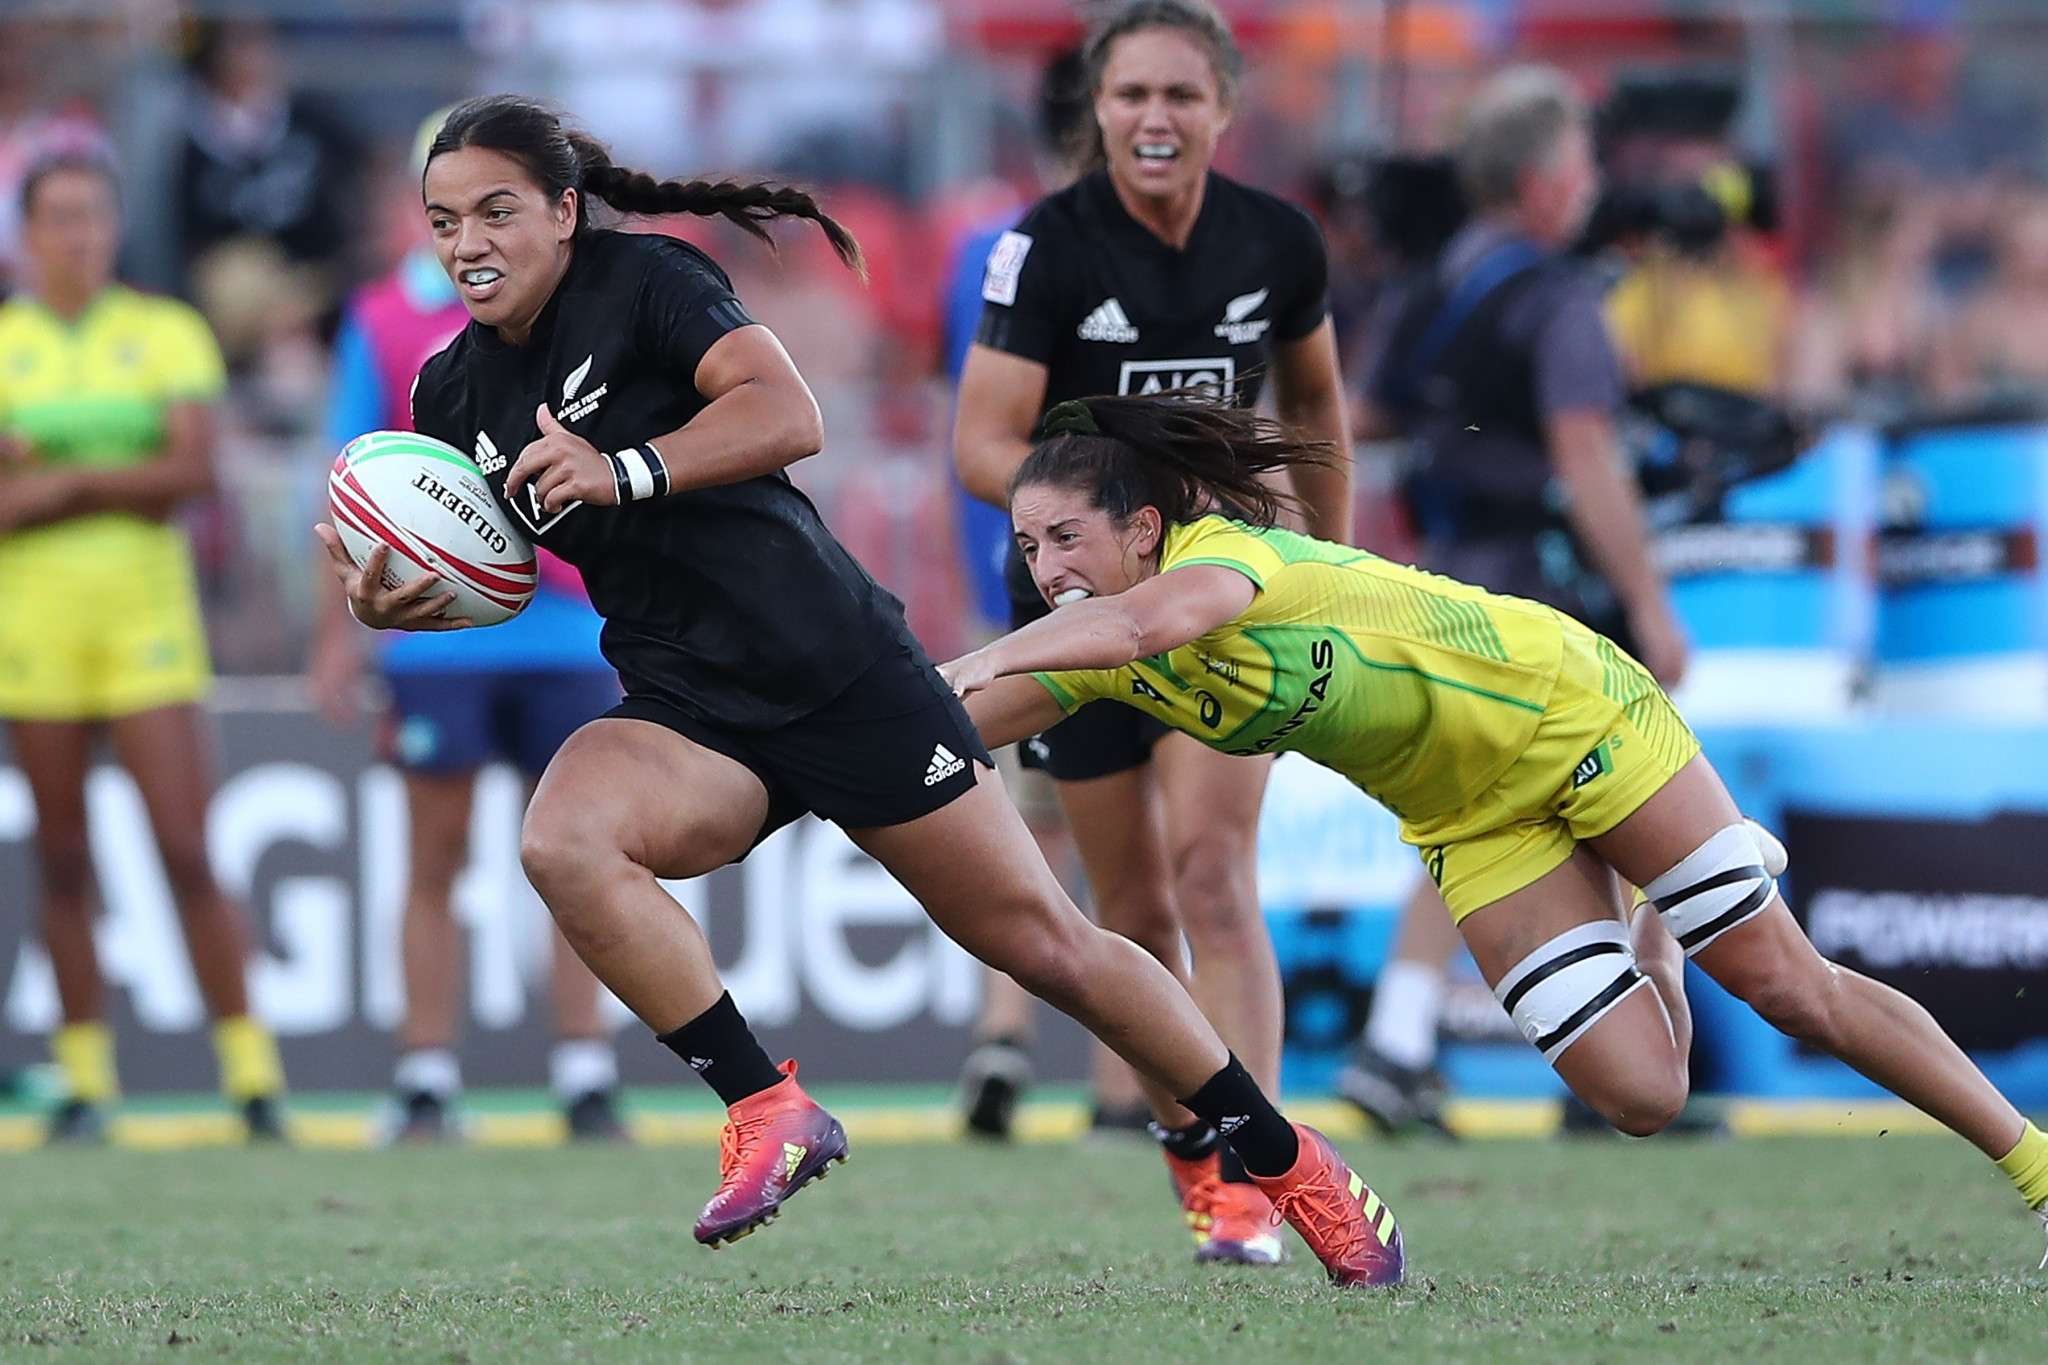 New Zealand are aiming to set a record for consecutive wins at the World Rugby Sevens Series in Kitakyushu ©World Rugby